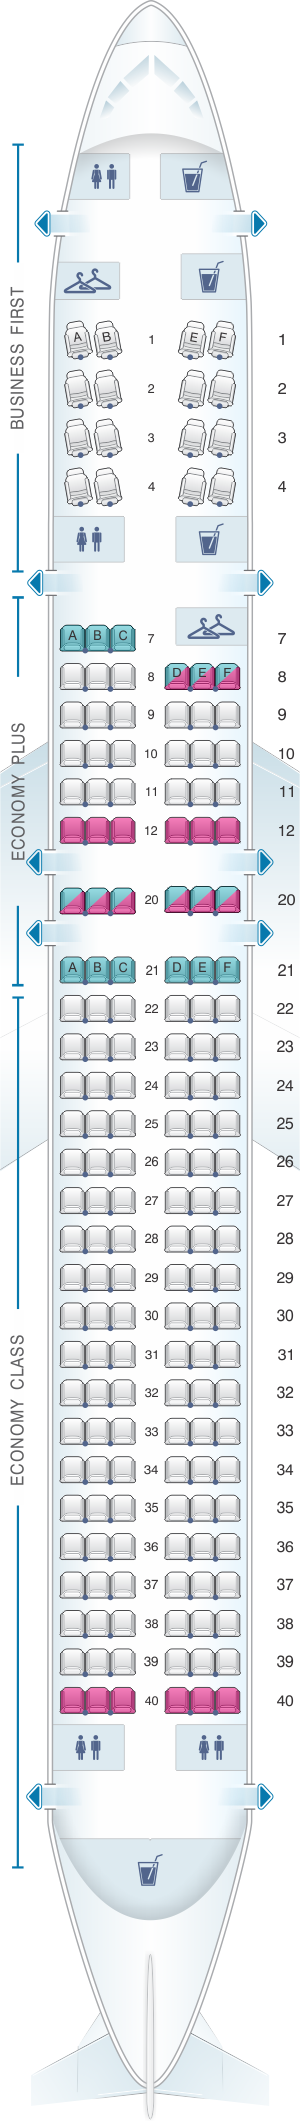 Seat map for United Airlines Boeing B757 200 (752) - version 1